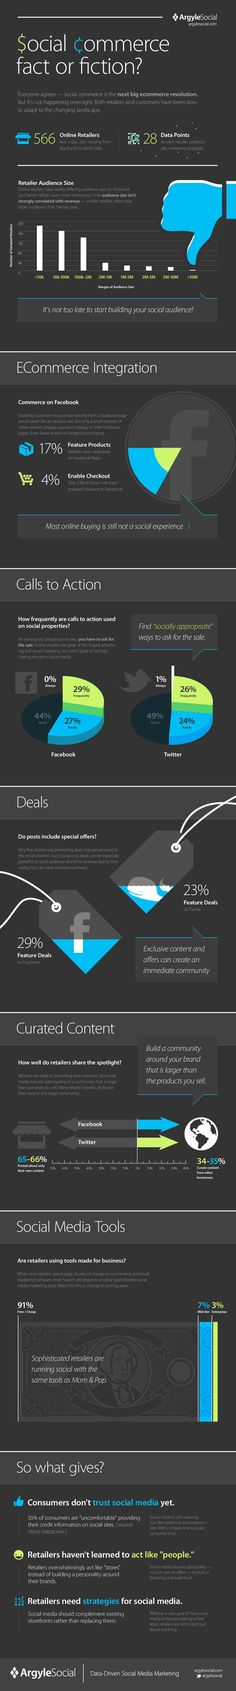 Are Users Actually Buying Anything on Social Networks Yet? - Infographic